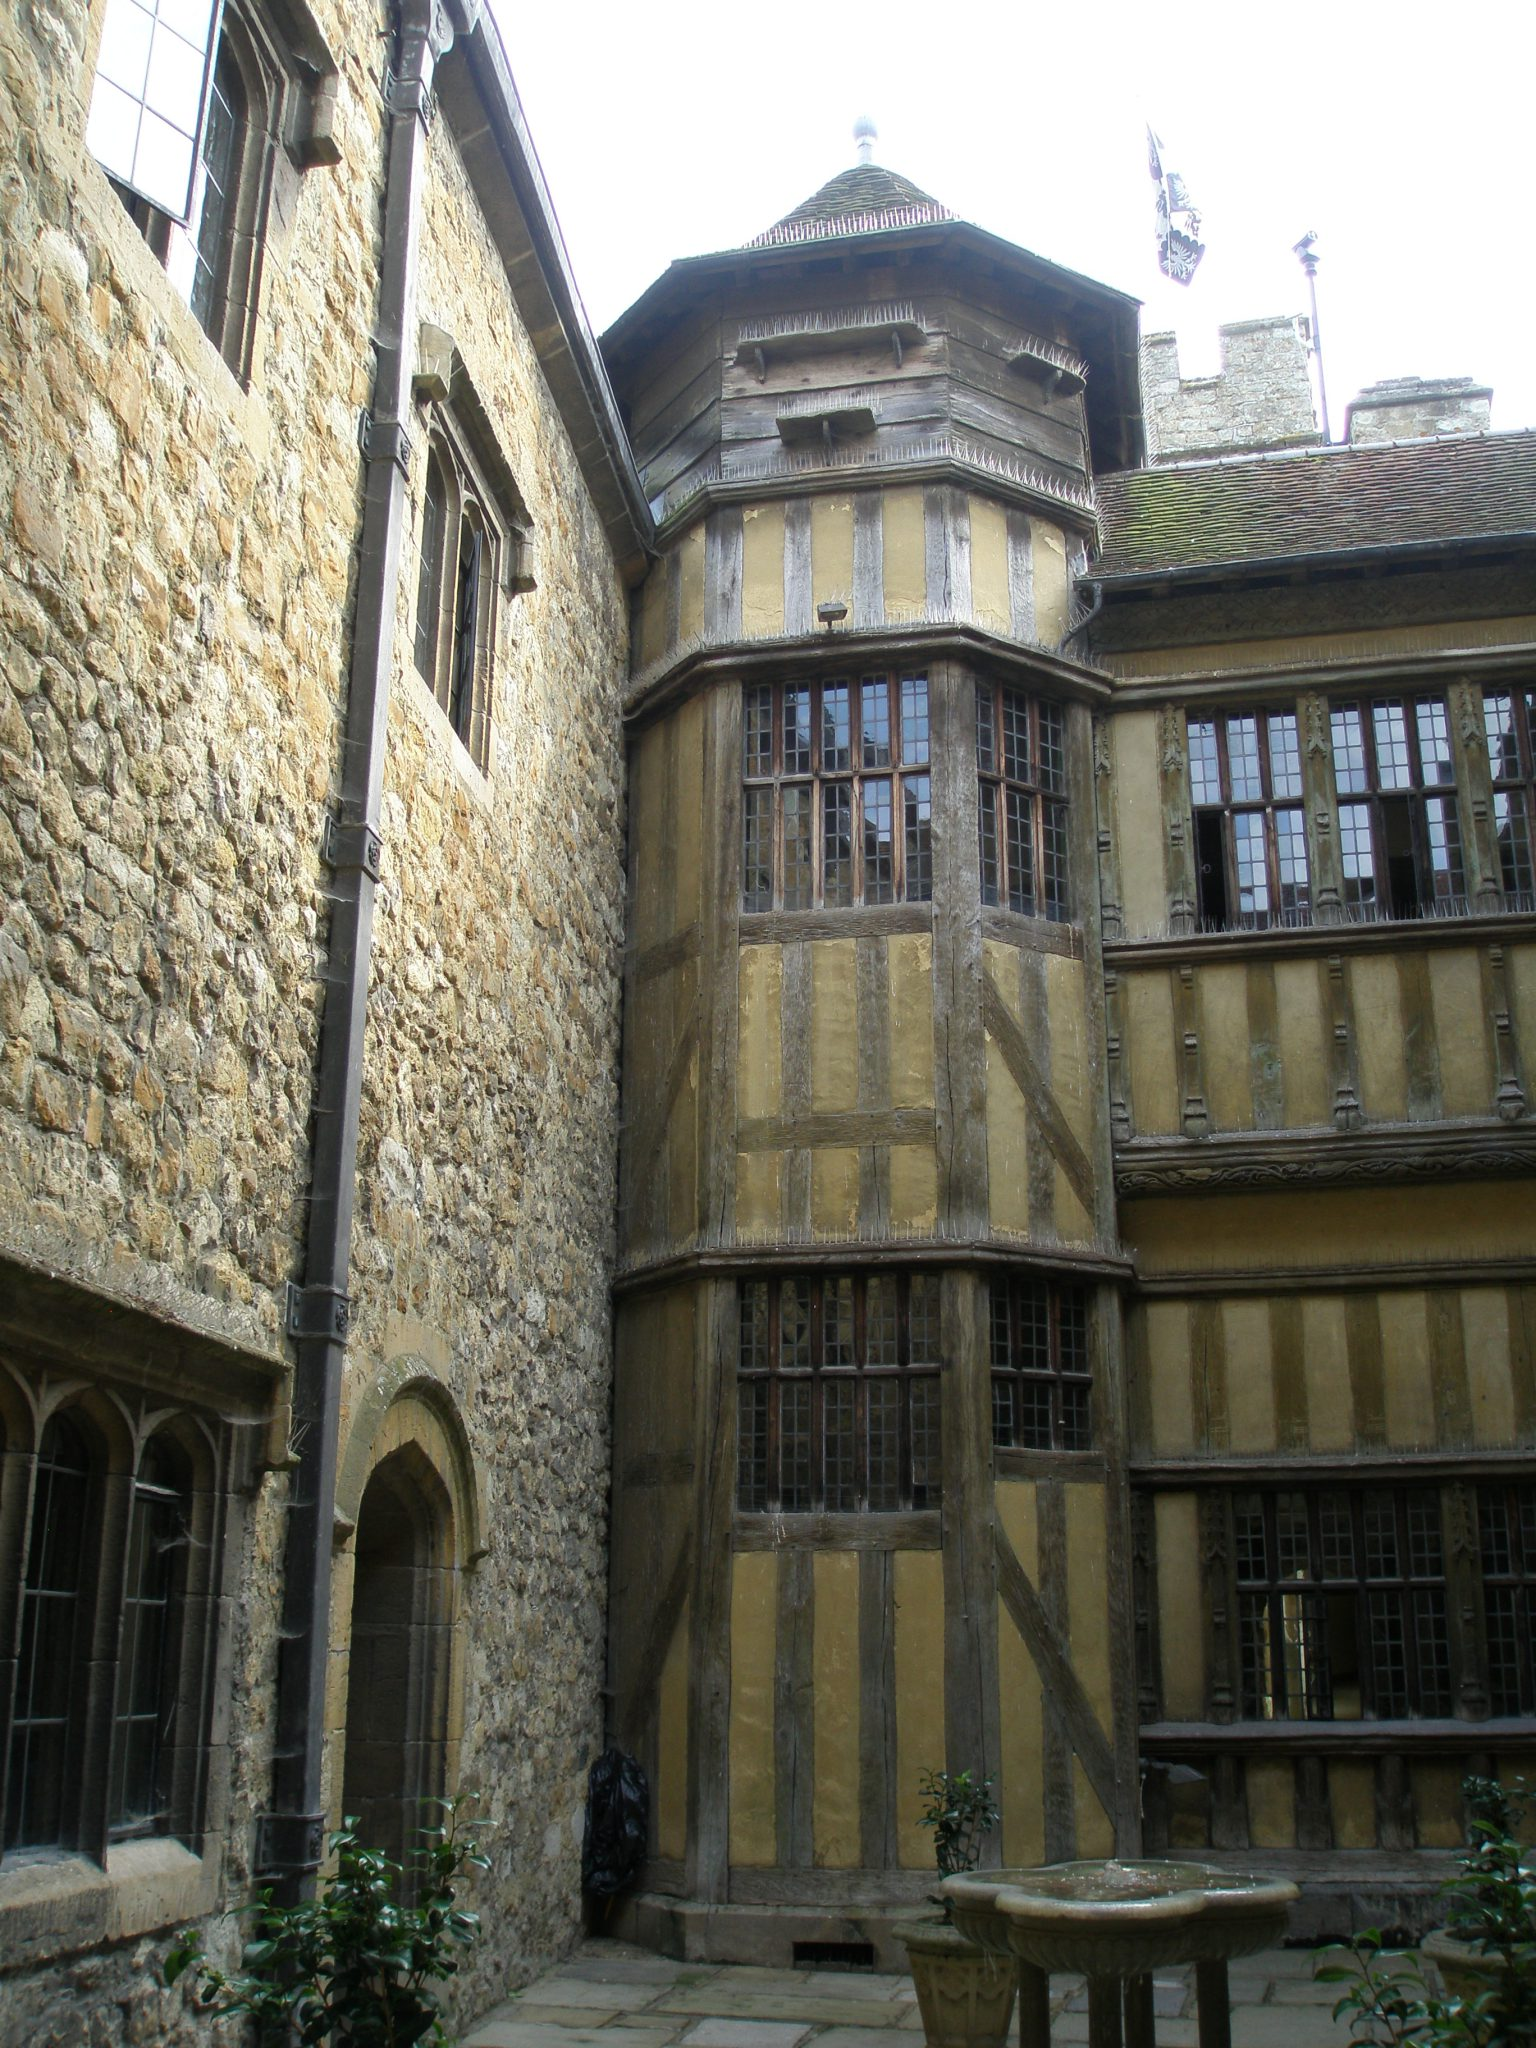 Another view of the Fountain Court